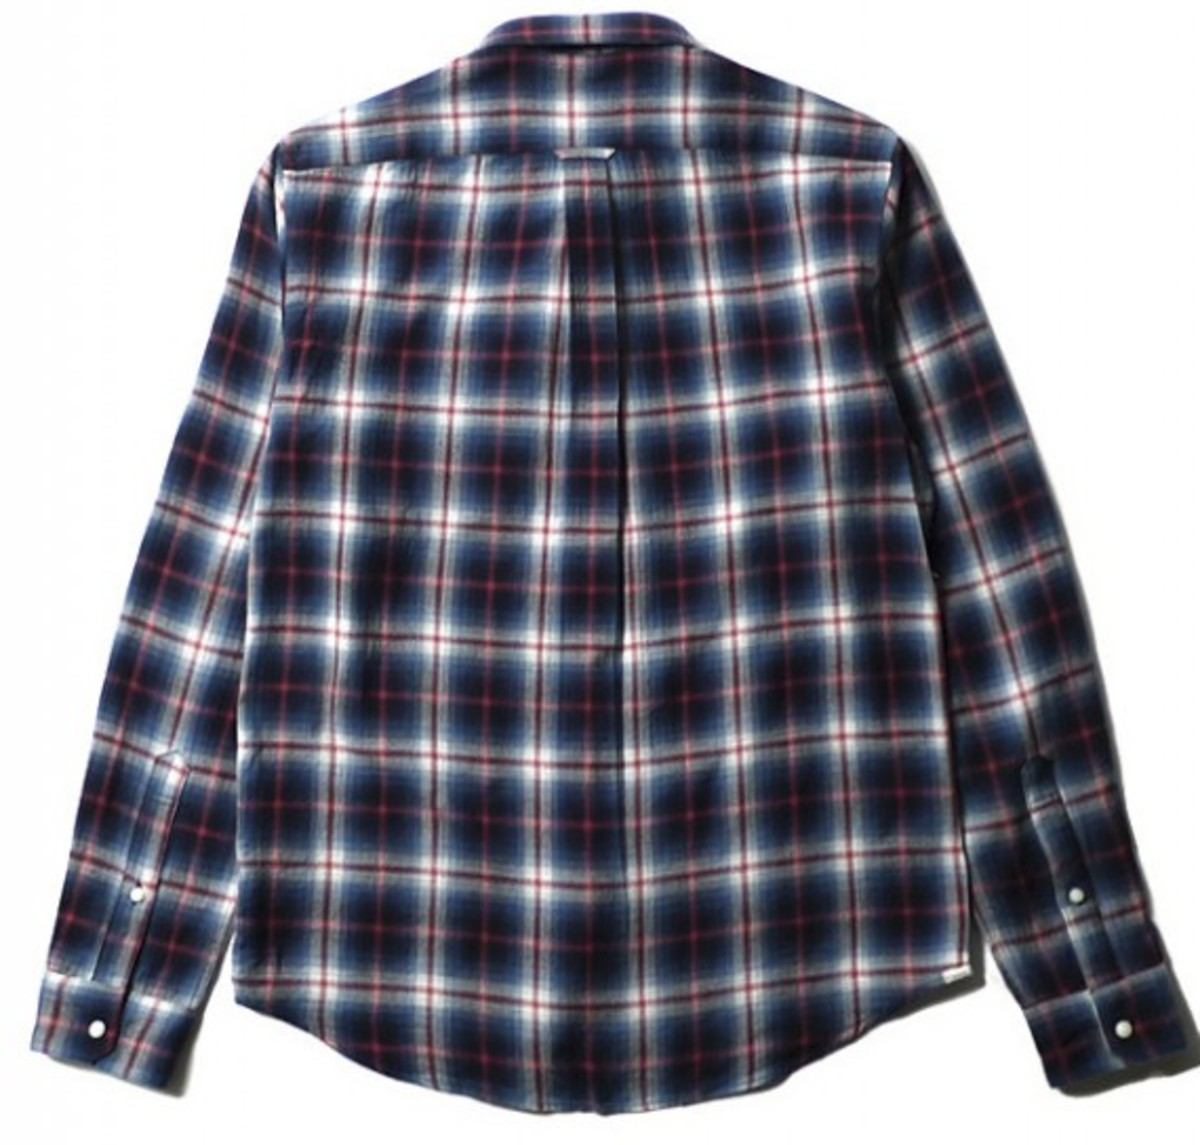 deluxe-greyhound-check-shirt-02